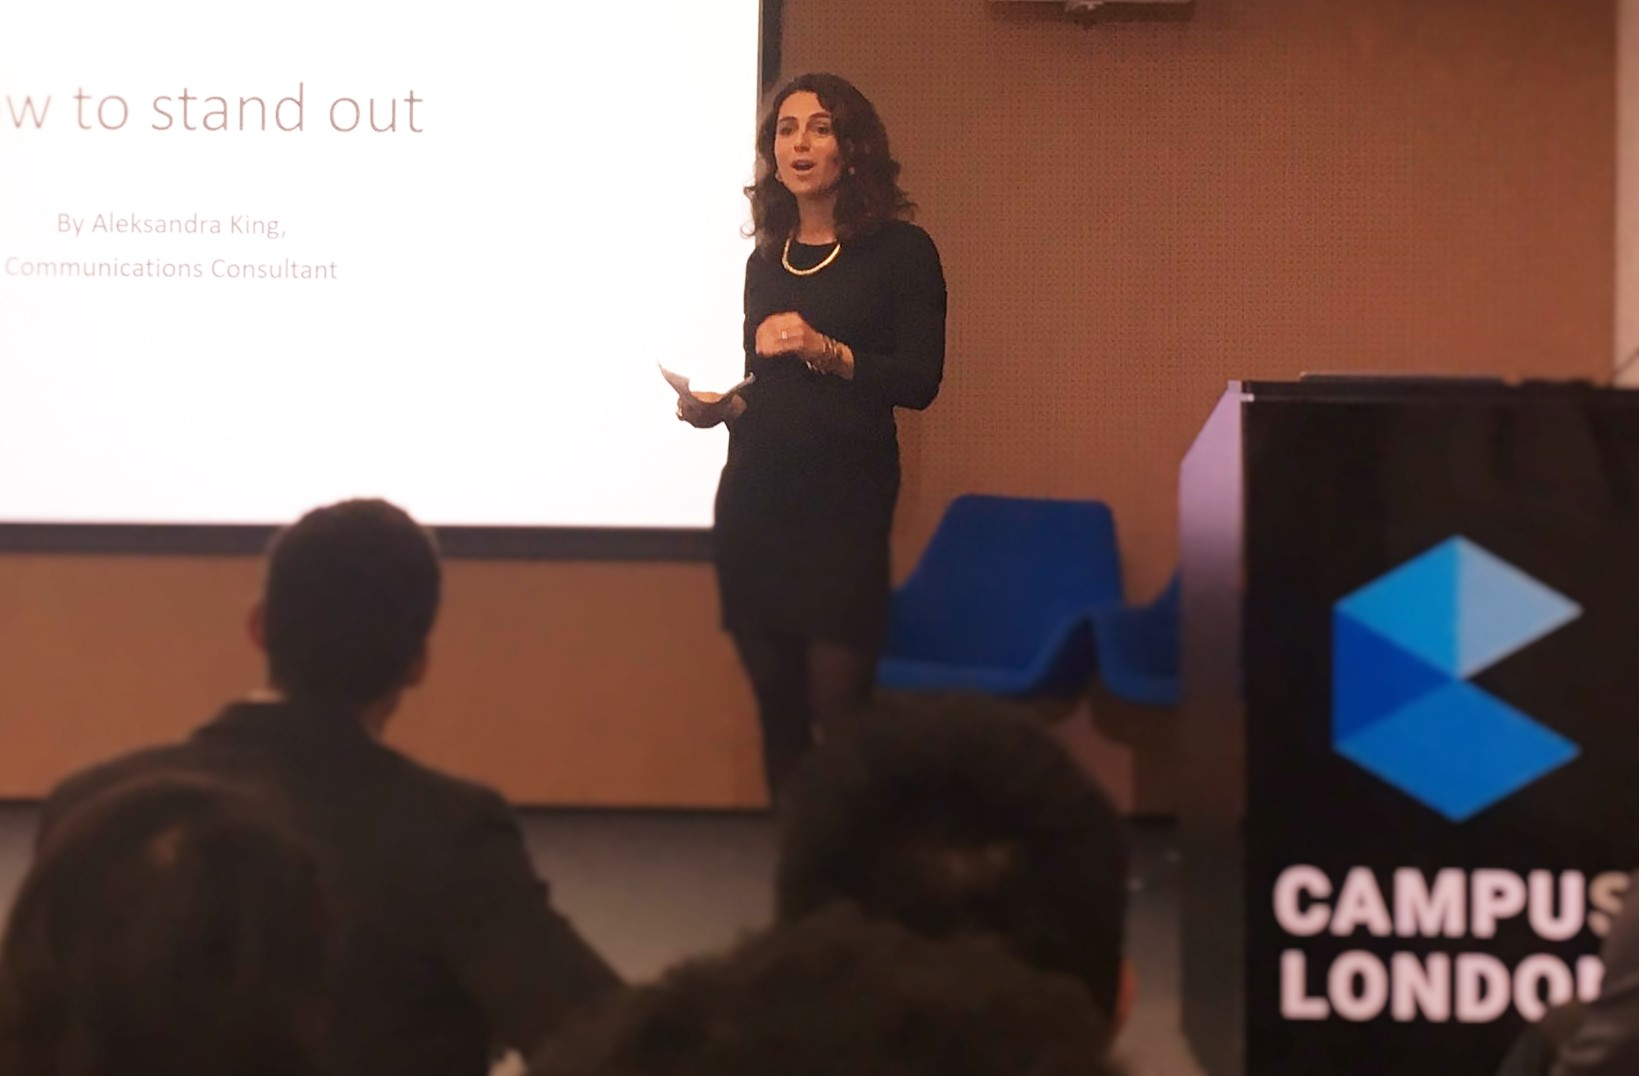 'How to Stand Out', delivered by Aleksandra King at Google Campus